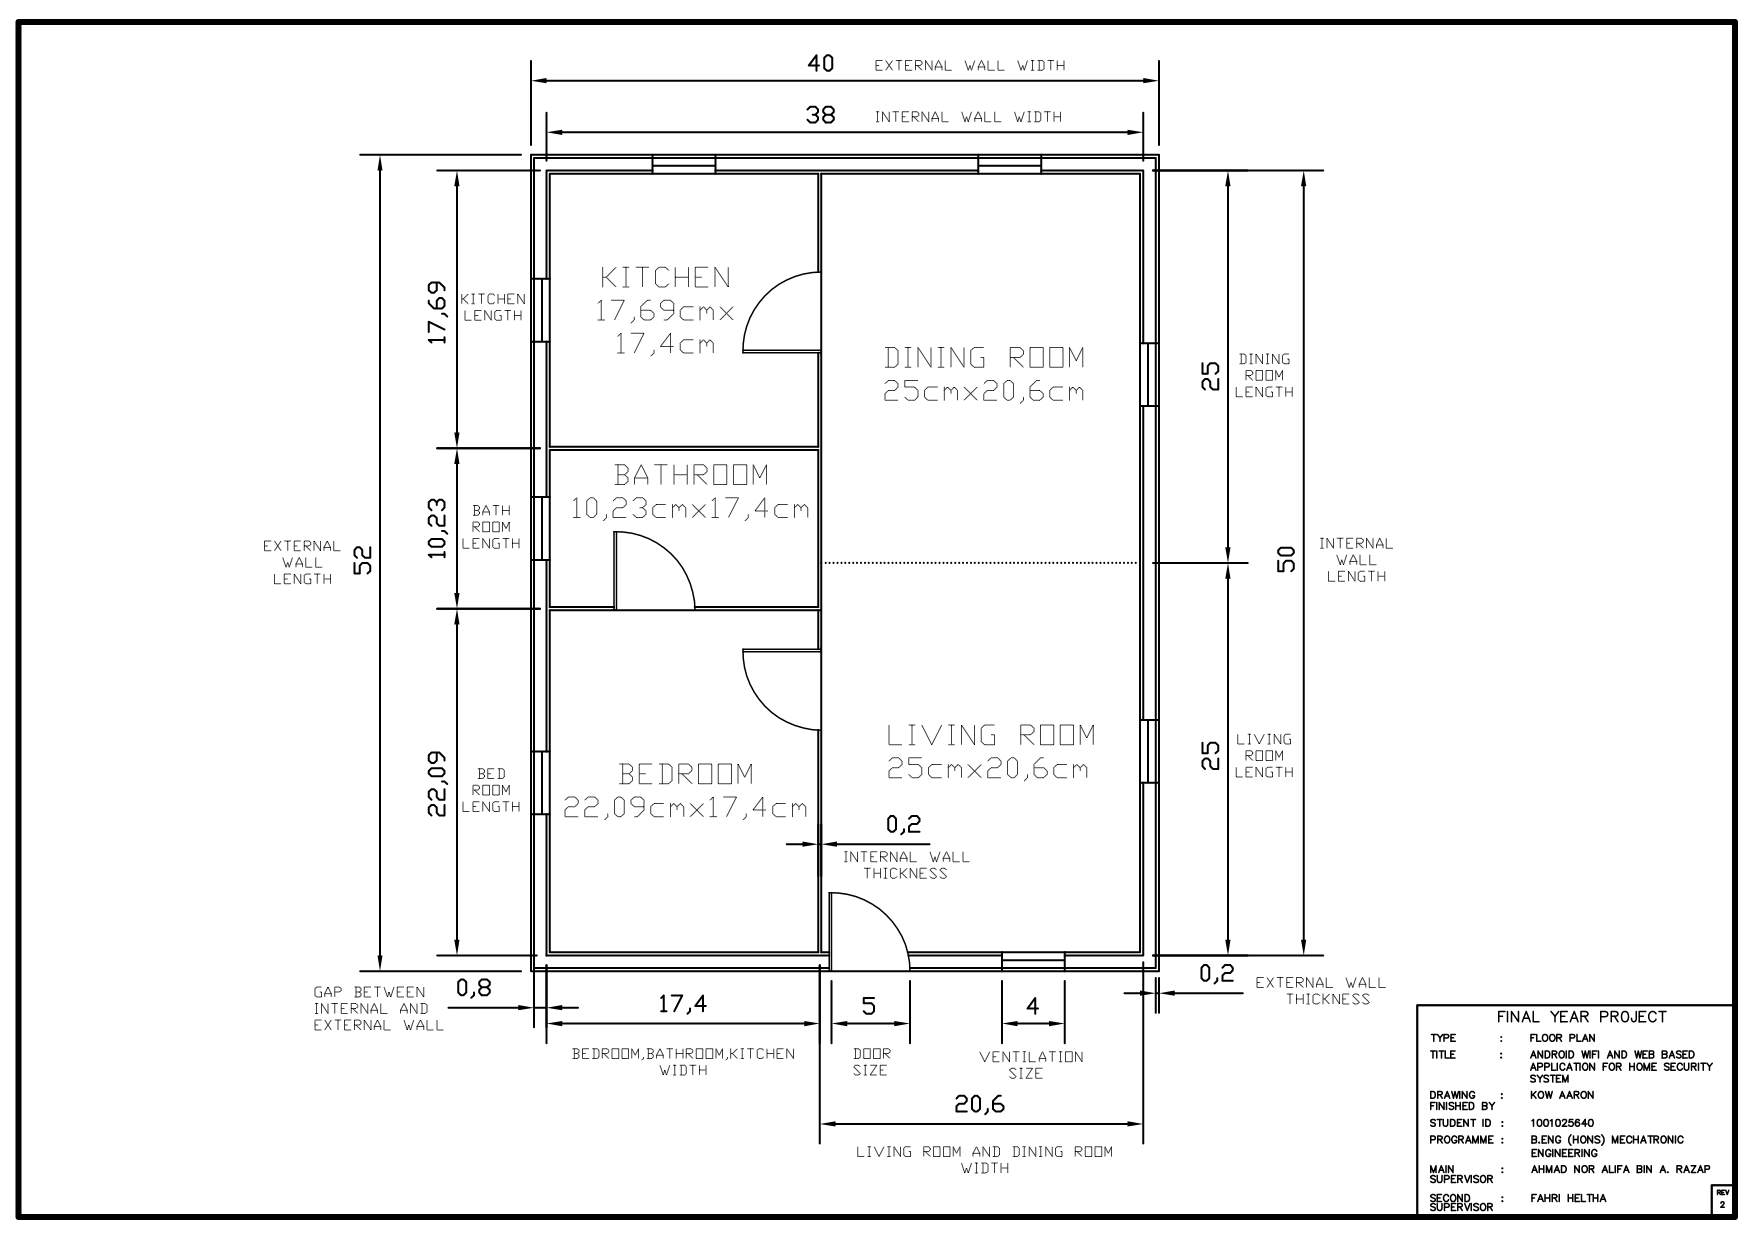 Fyp homesecuritysystem floor plan design